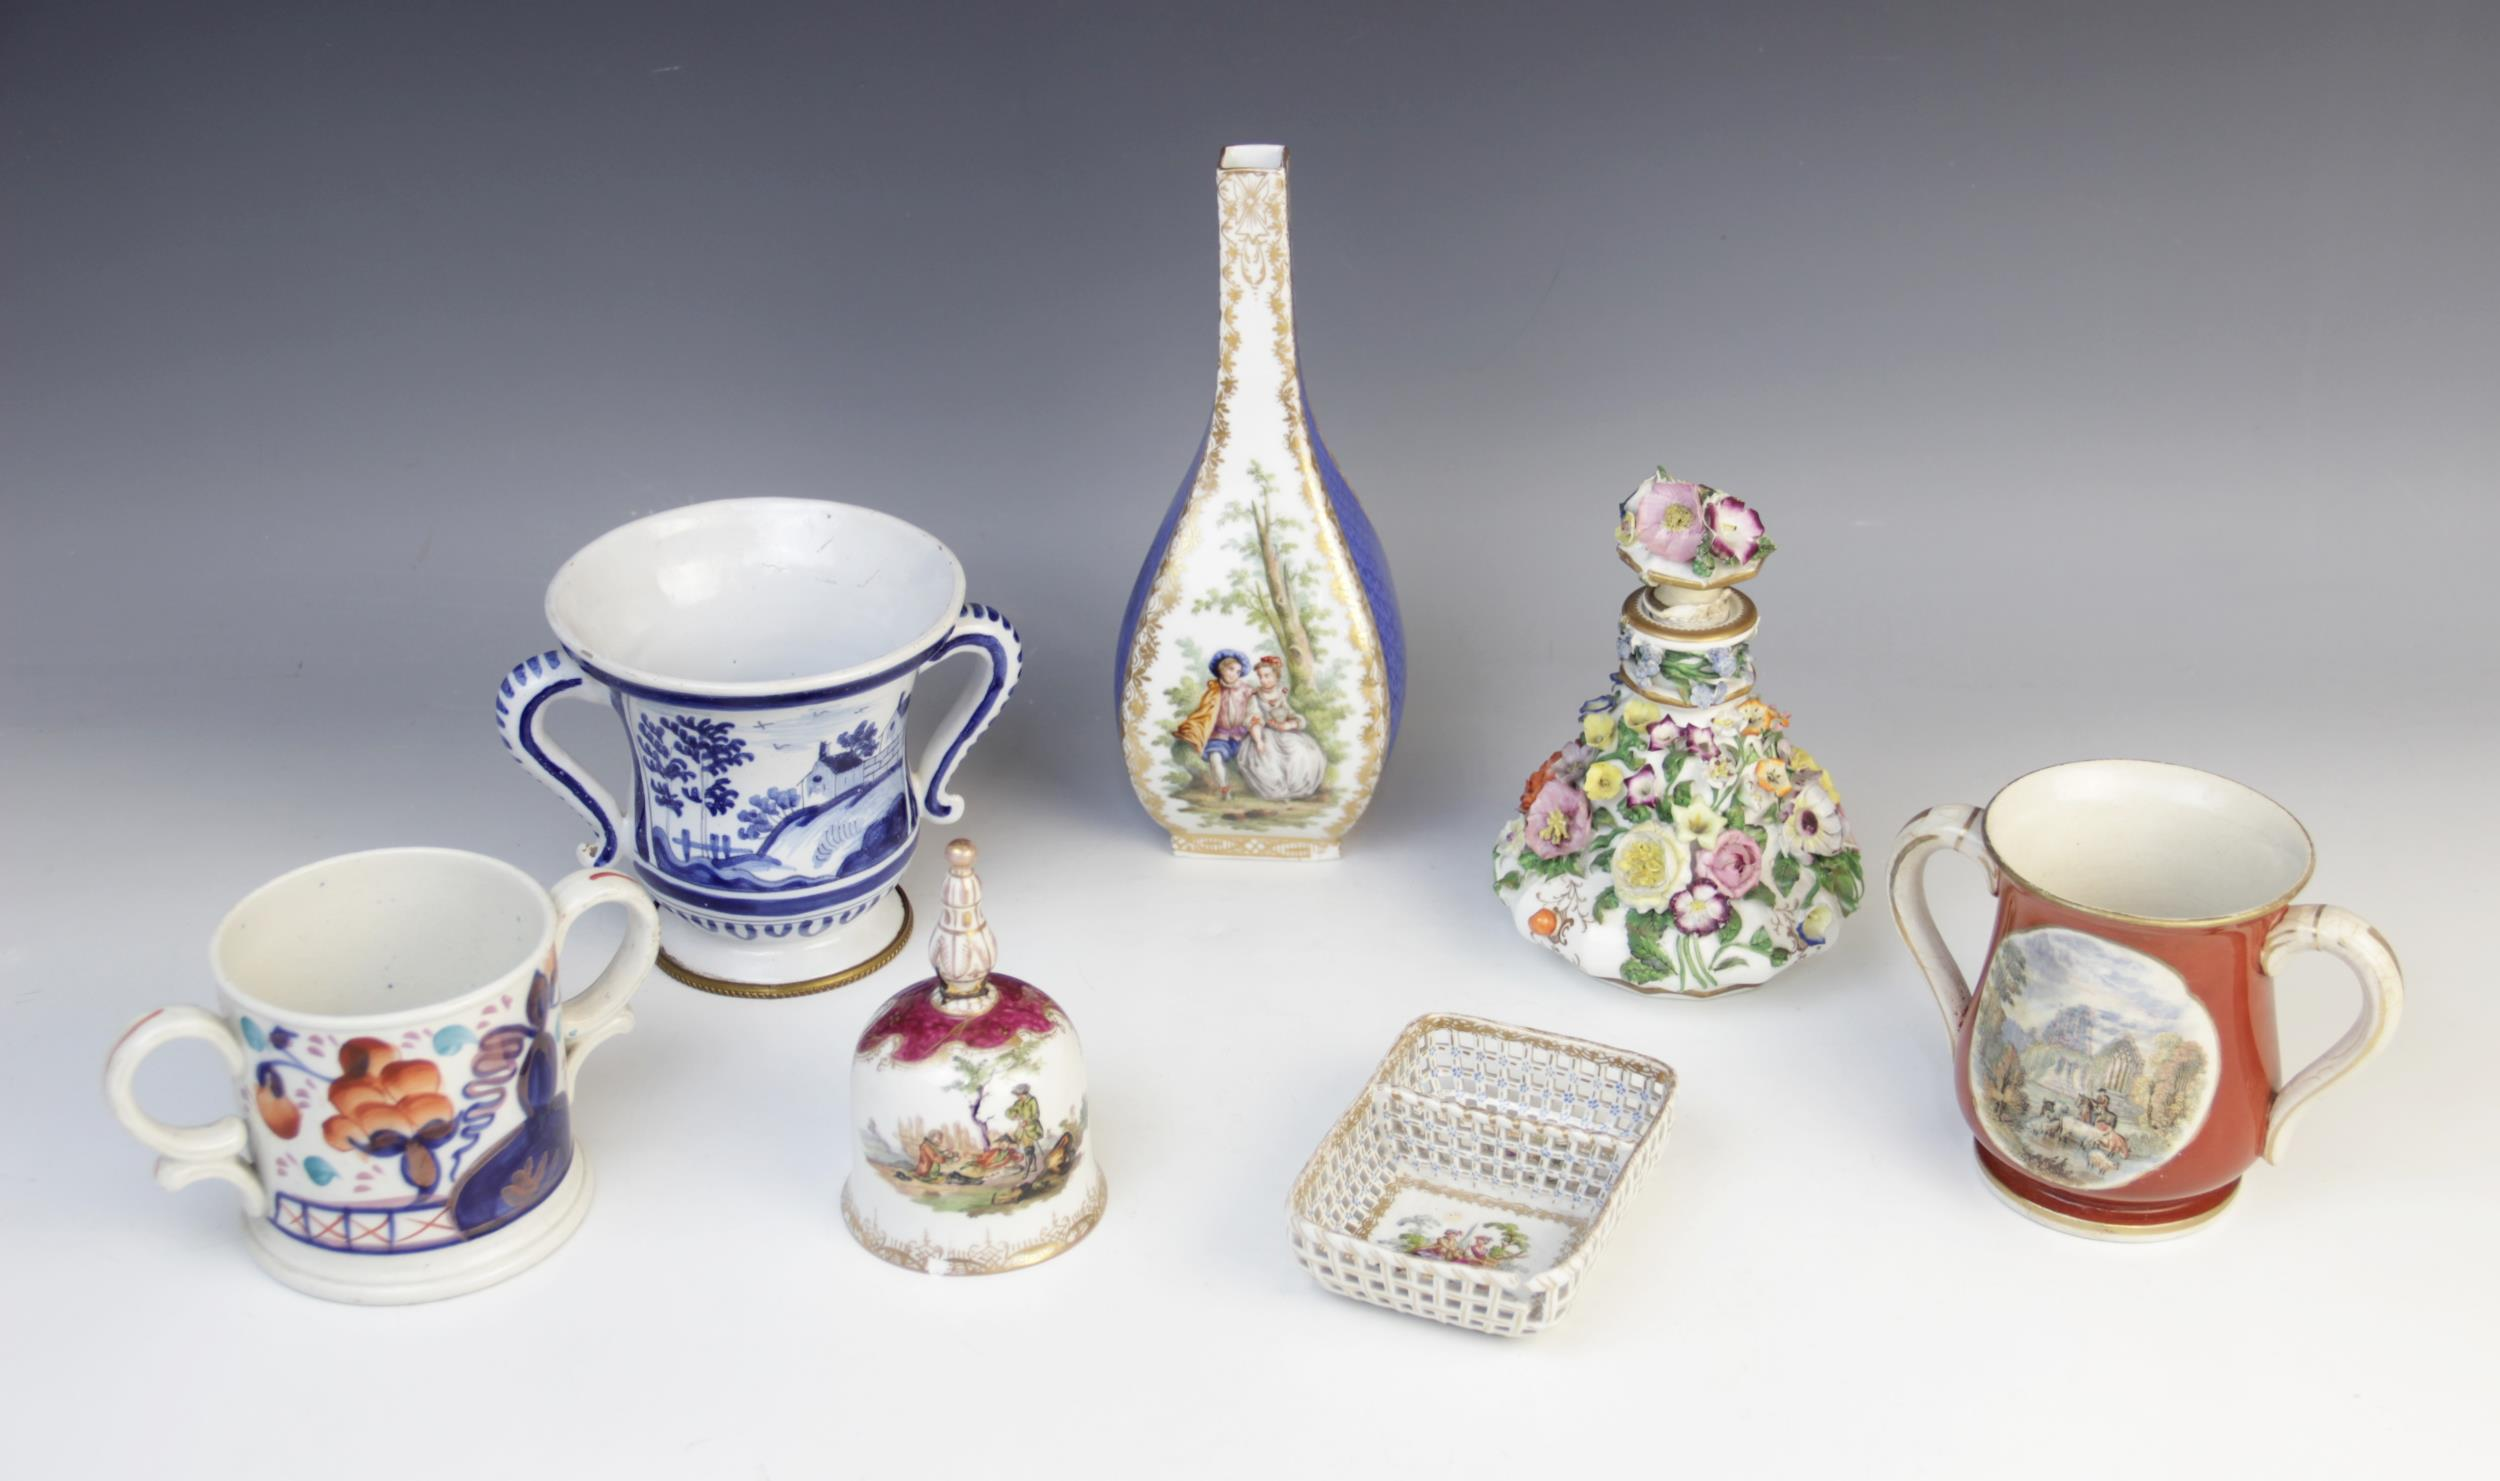 A selection of British and Continental porcelain, to include a German porcelain bottle vase with